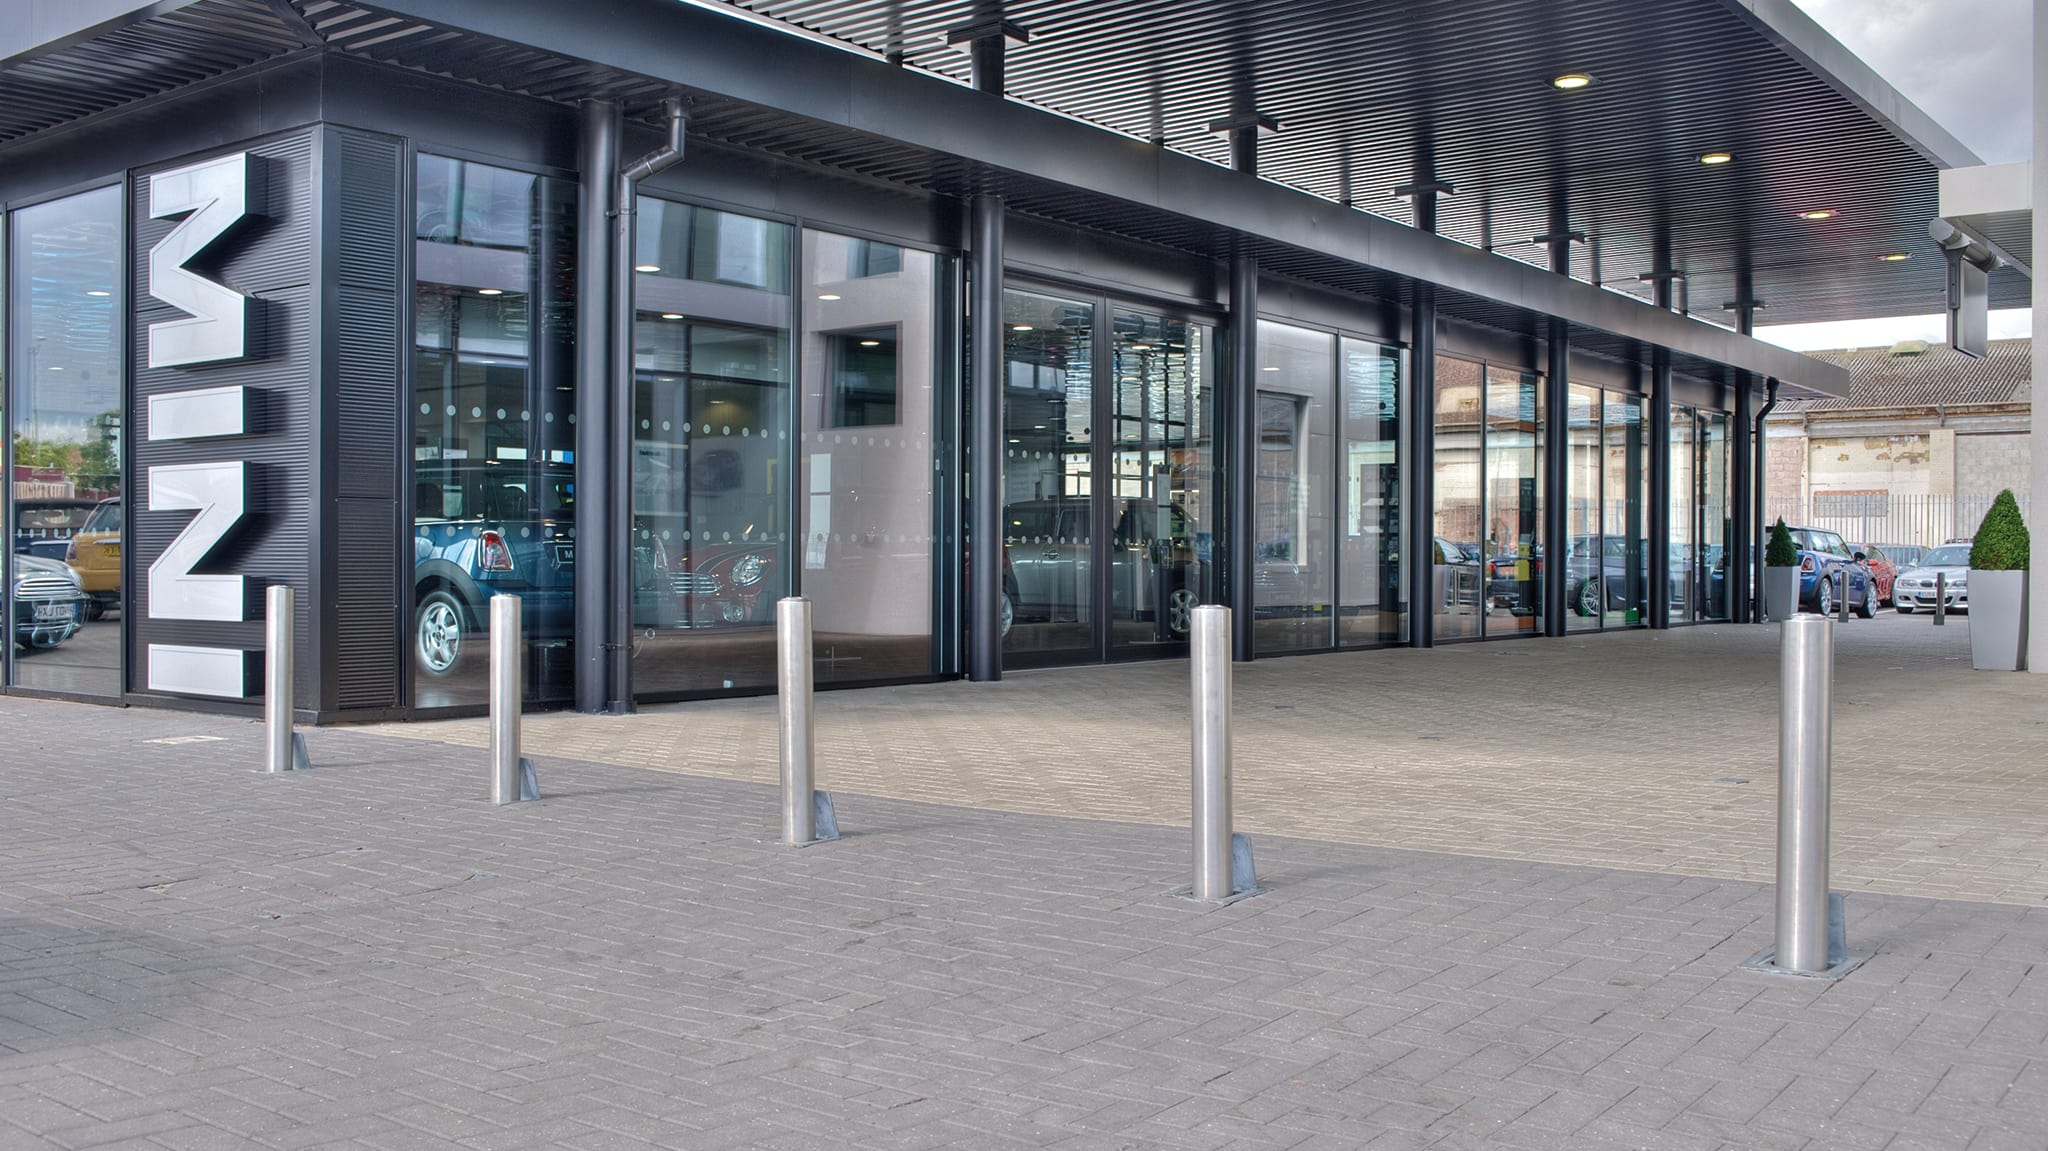 steel bollard as a permemeter protection